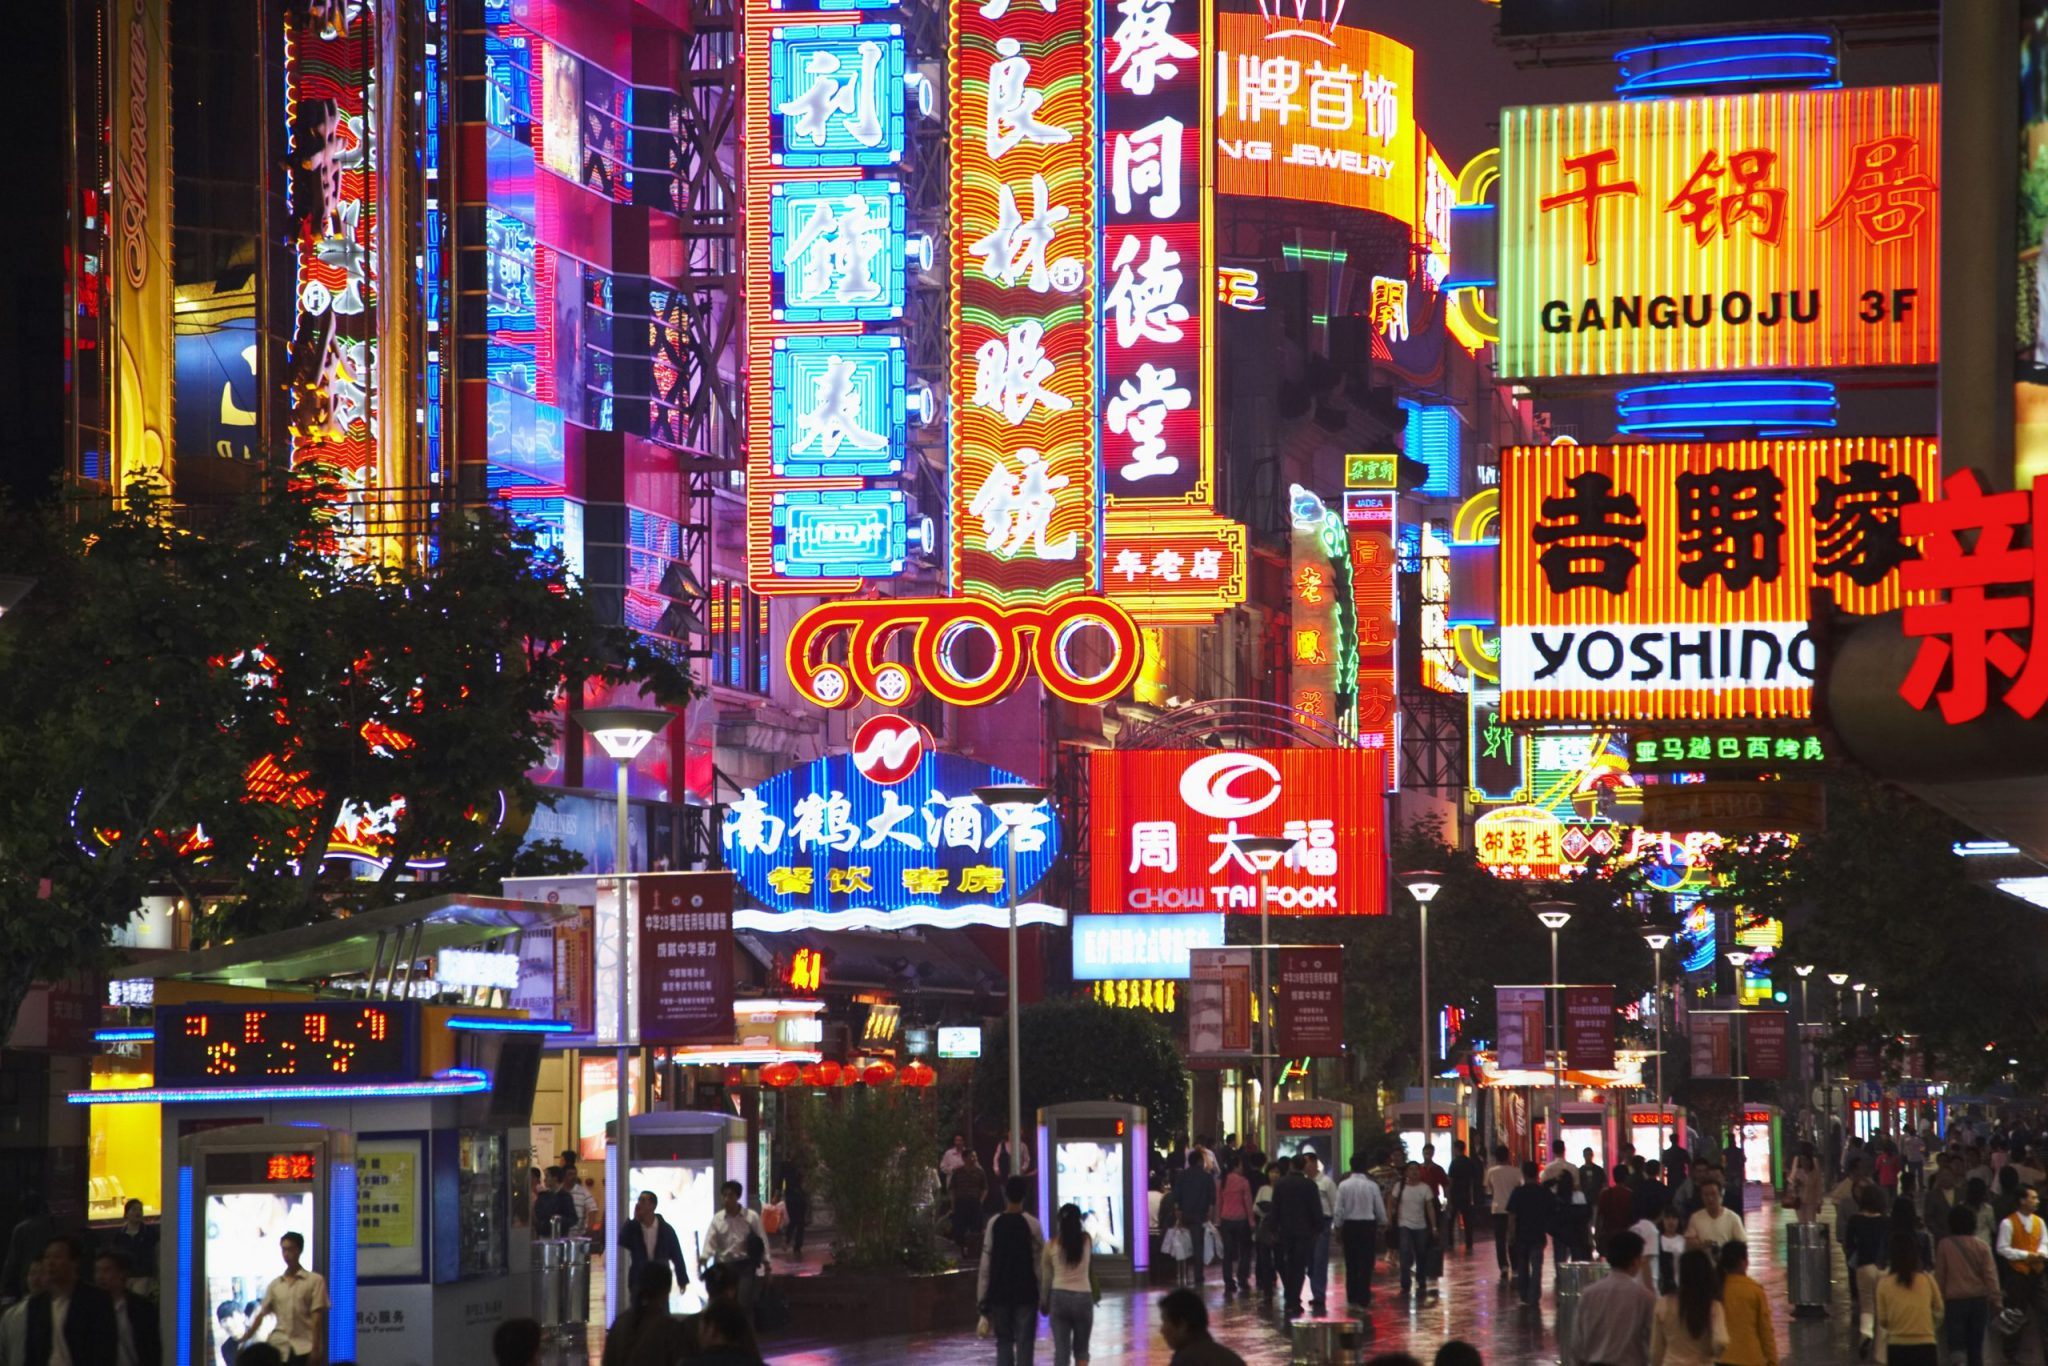 City street lit up at night, Shanghai, China. A potential nighttime view while on an adventure to teach English abroad